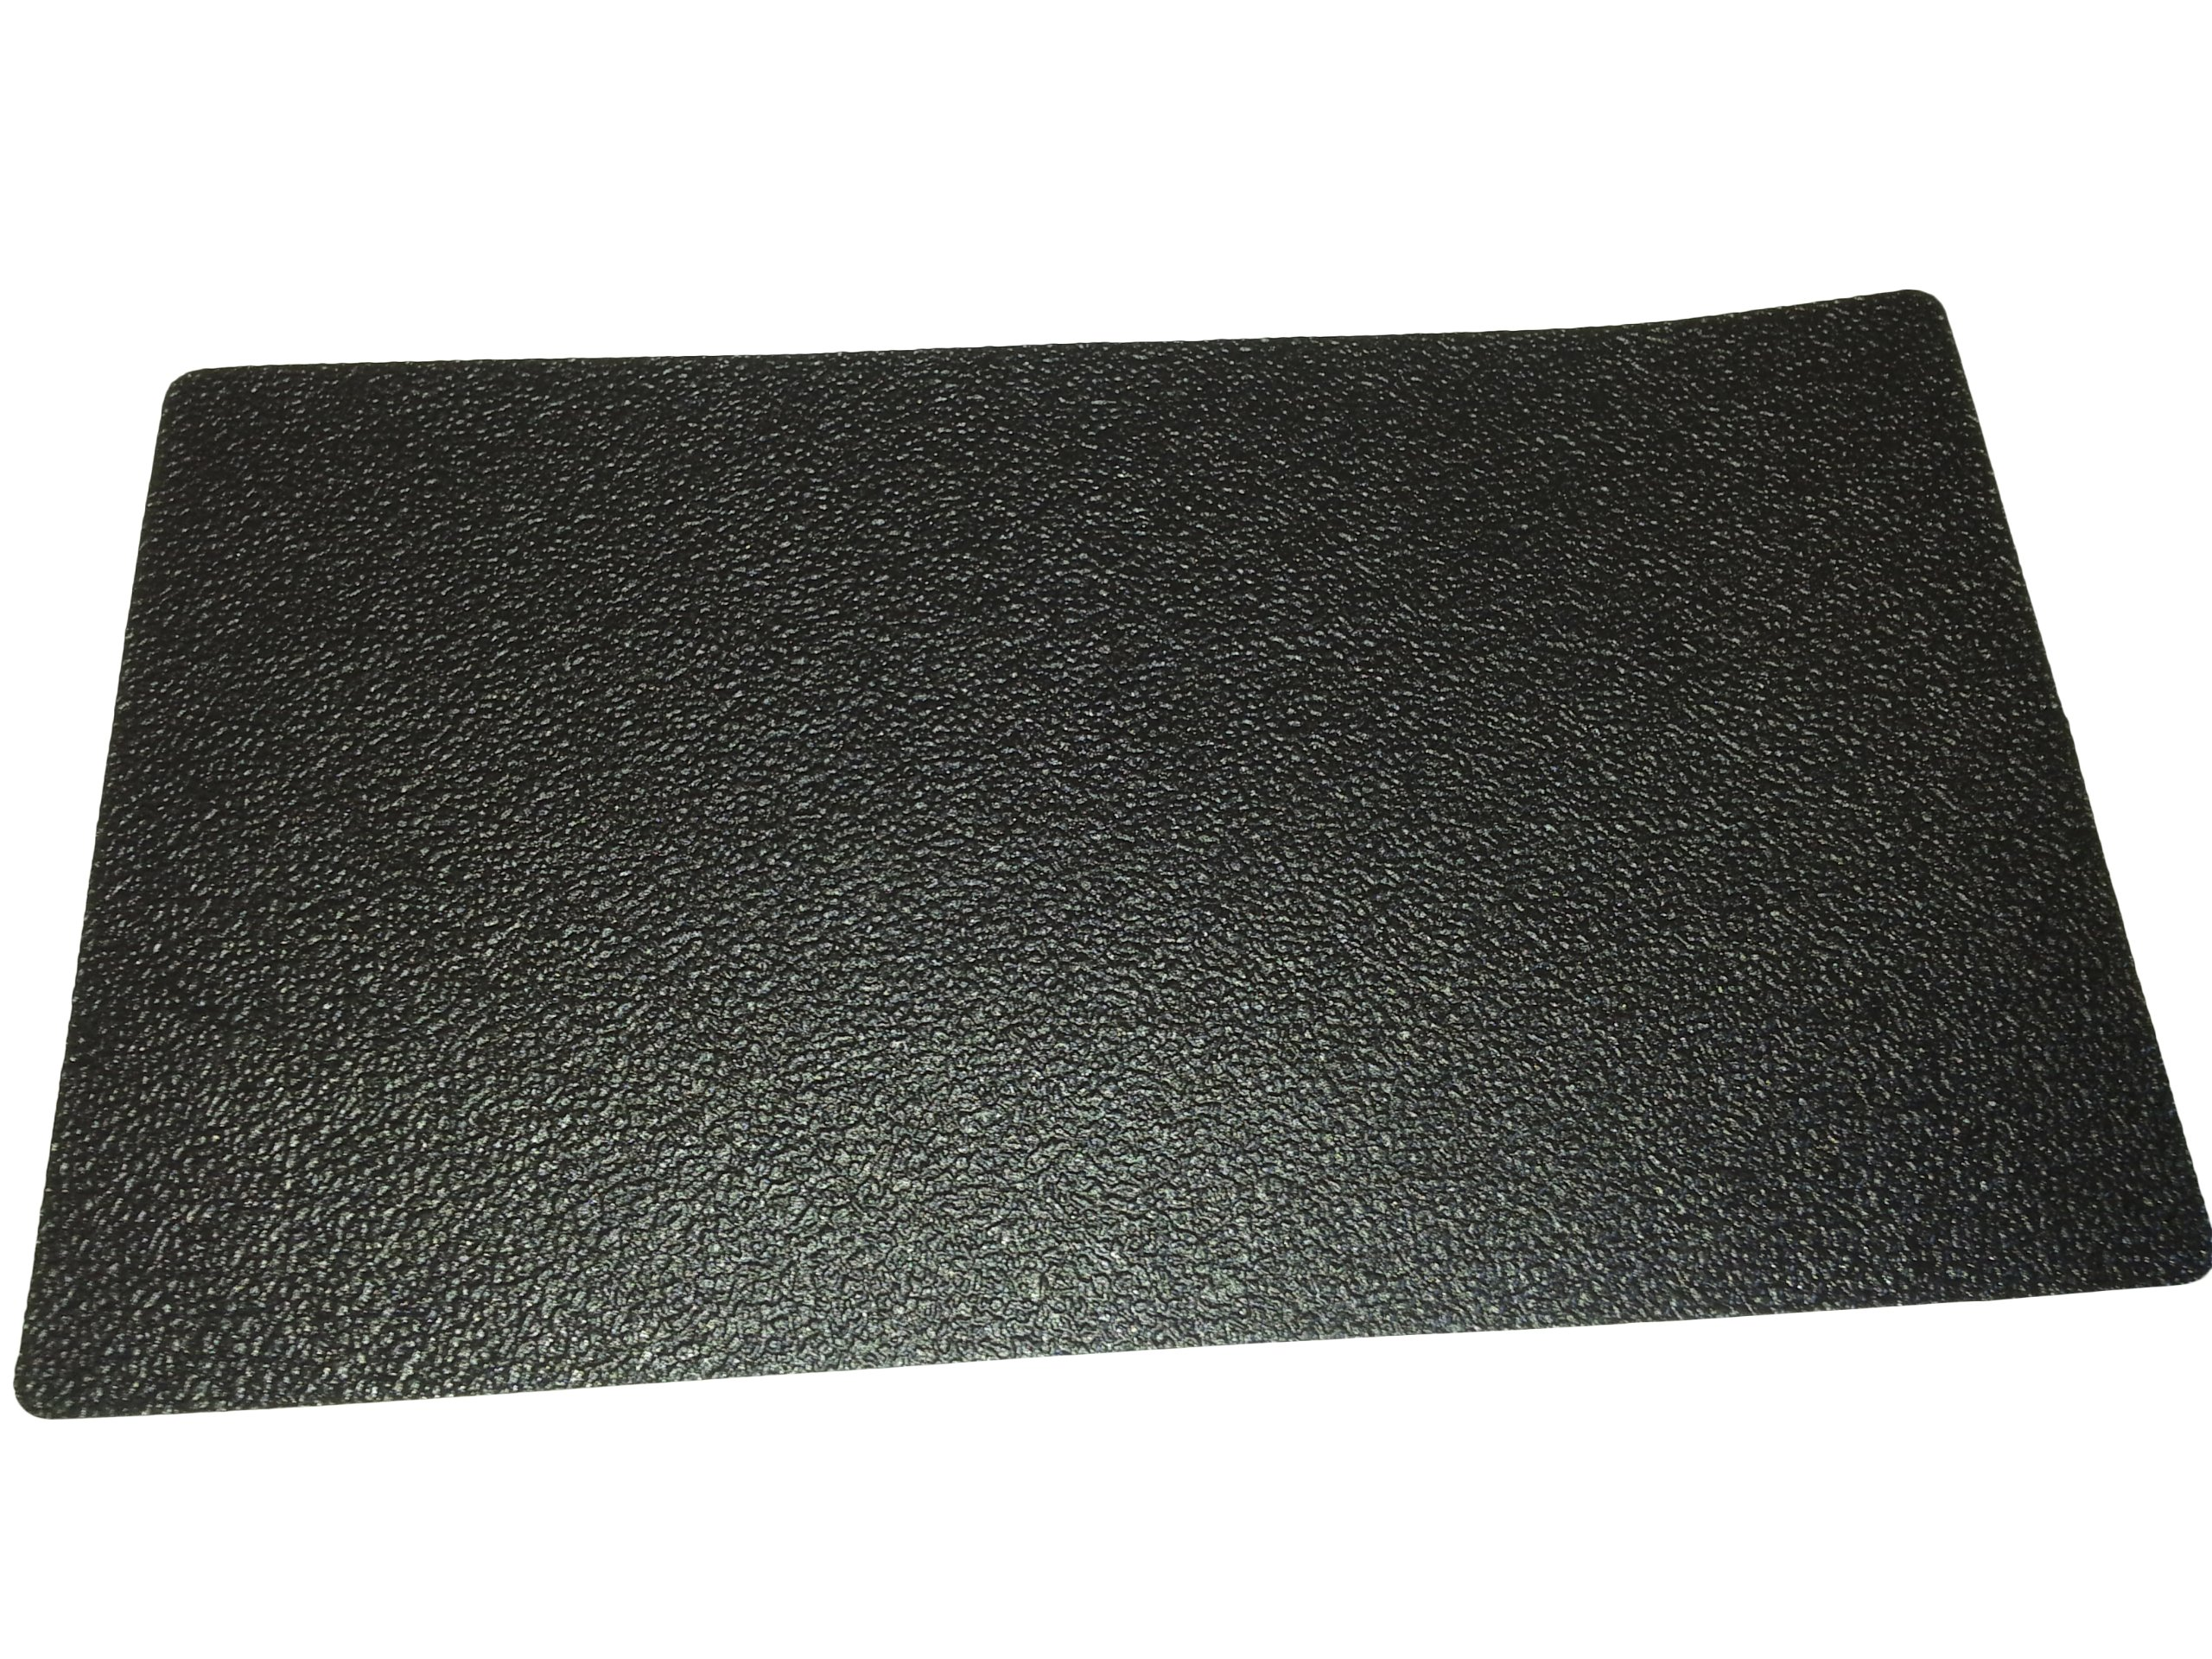 TechSpec Tank Grips - General Sheets - Releasable Adhesive - Two 7.25'' x 13'' General Sheets - High Fusion by TechSpec